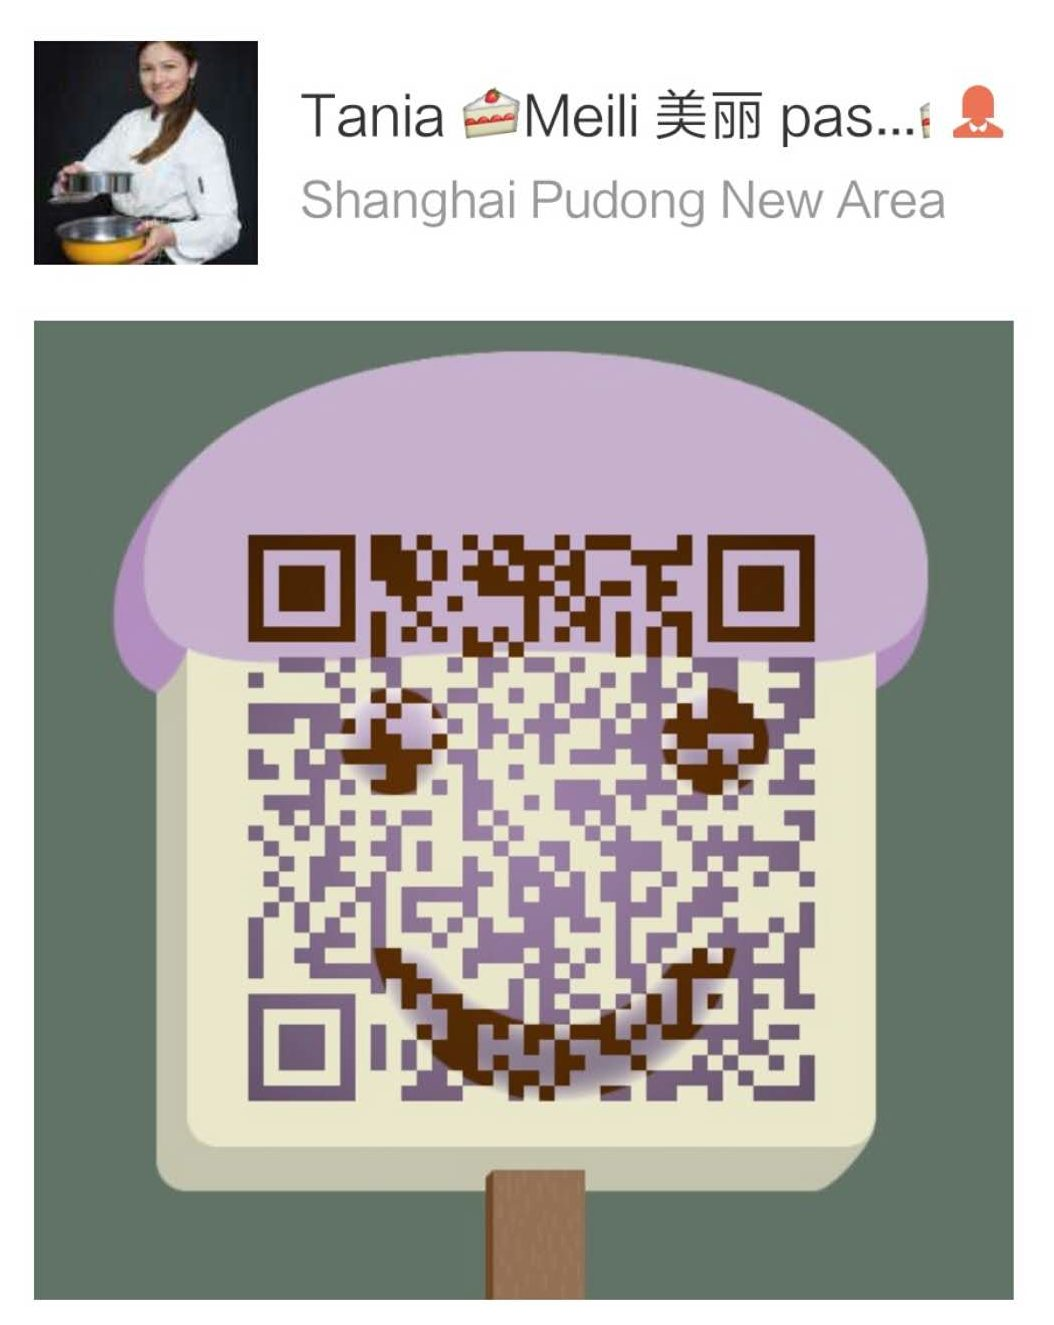 tania meili pastry wechat